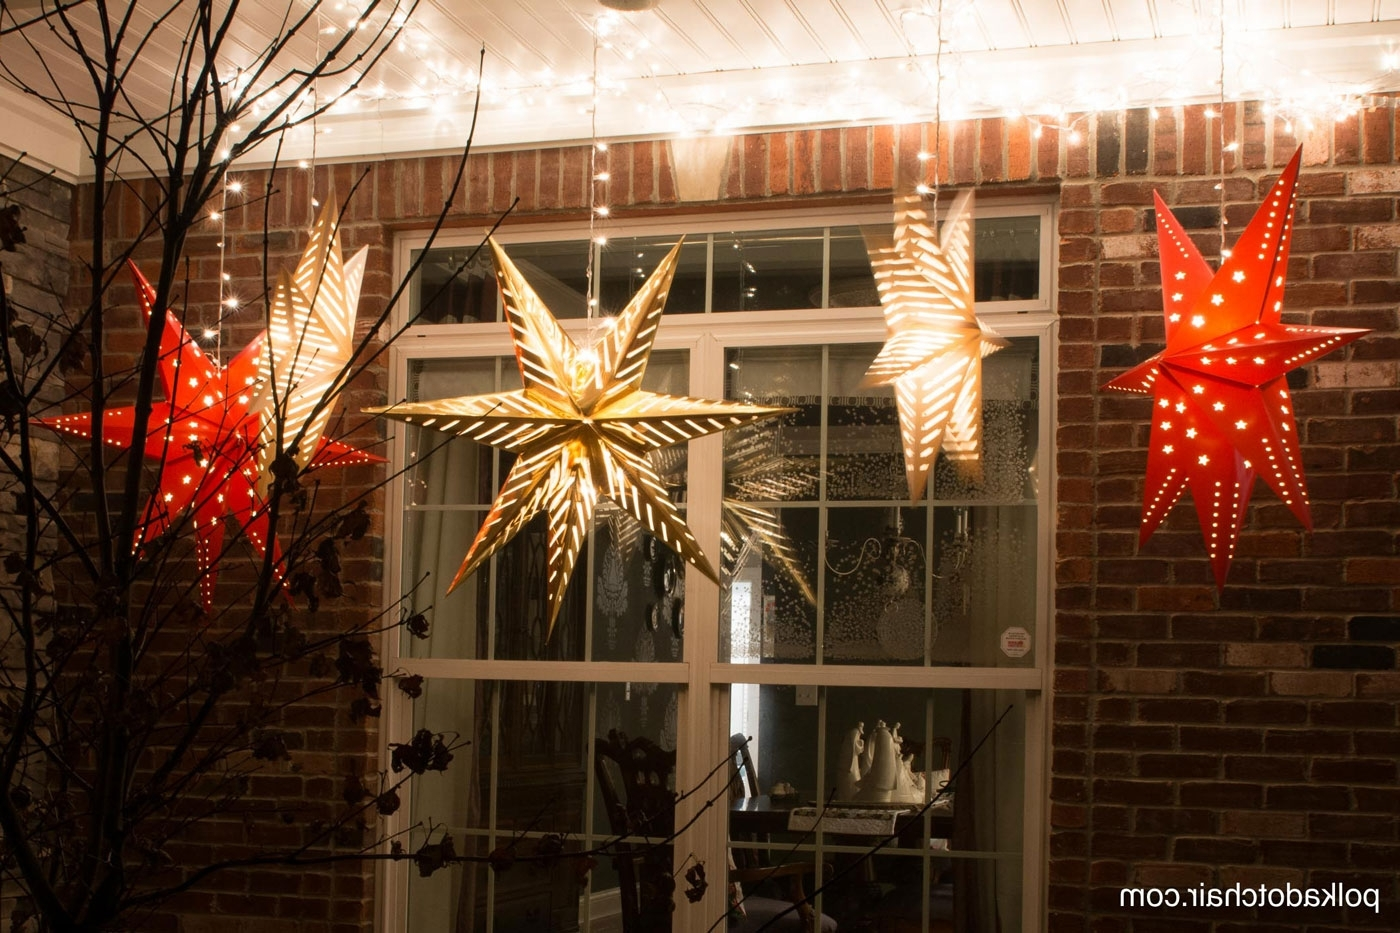 Hanging Star Lanterns; A Christmas Front Porch Decorating Idea – The Within Preferred Outdoor Lanterns For Christmas (View 6 of 20)